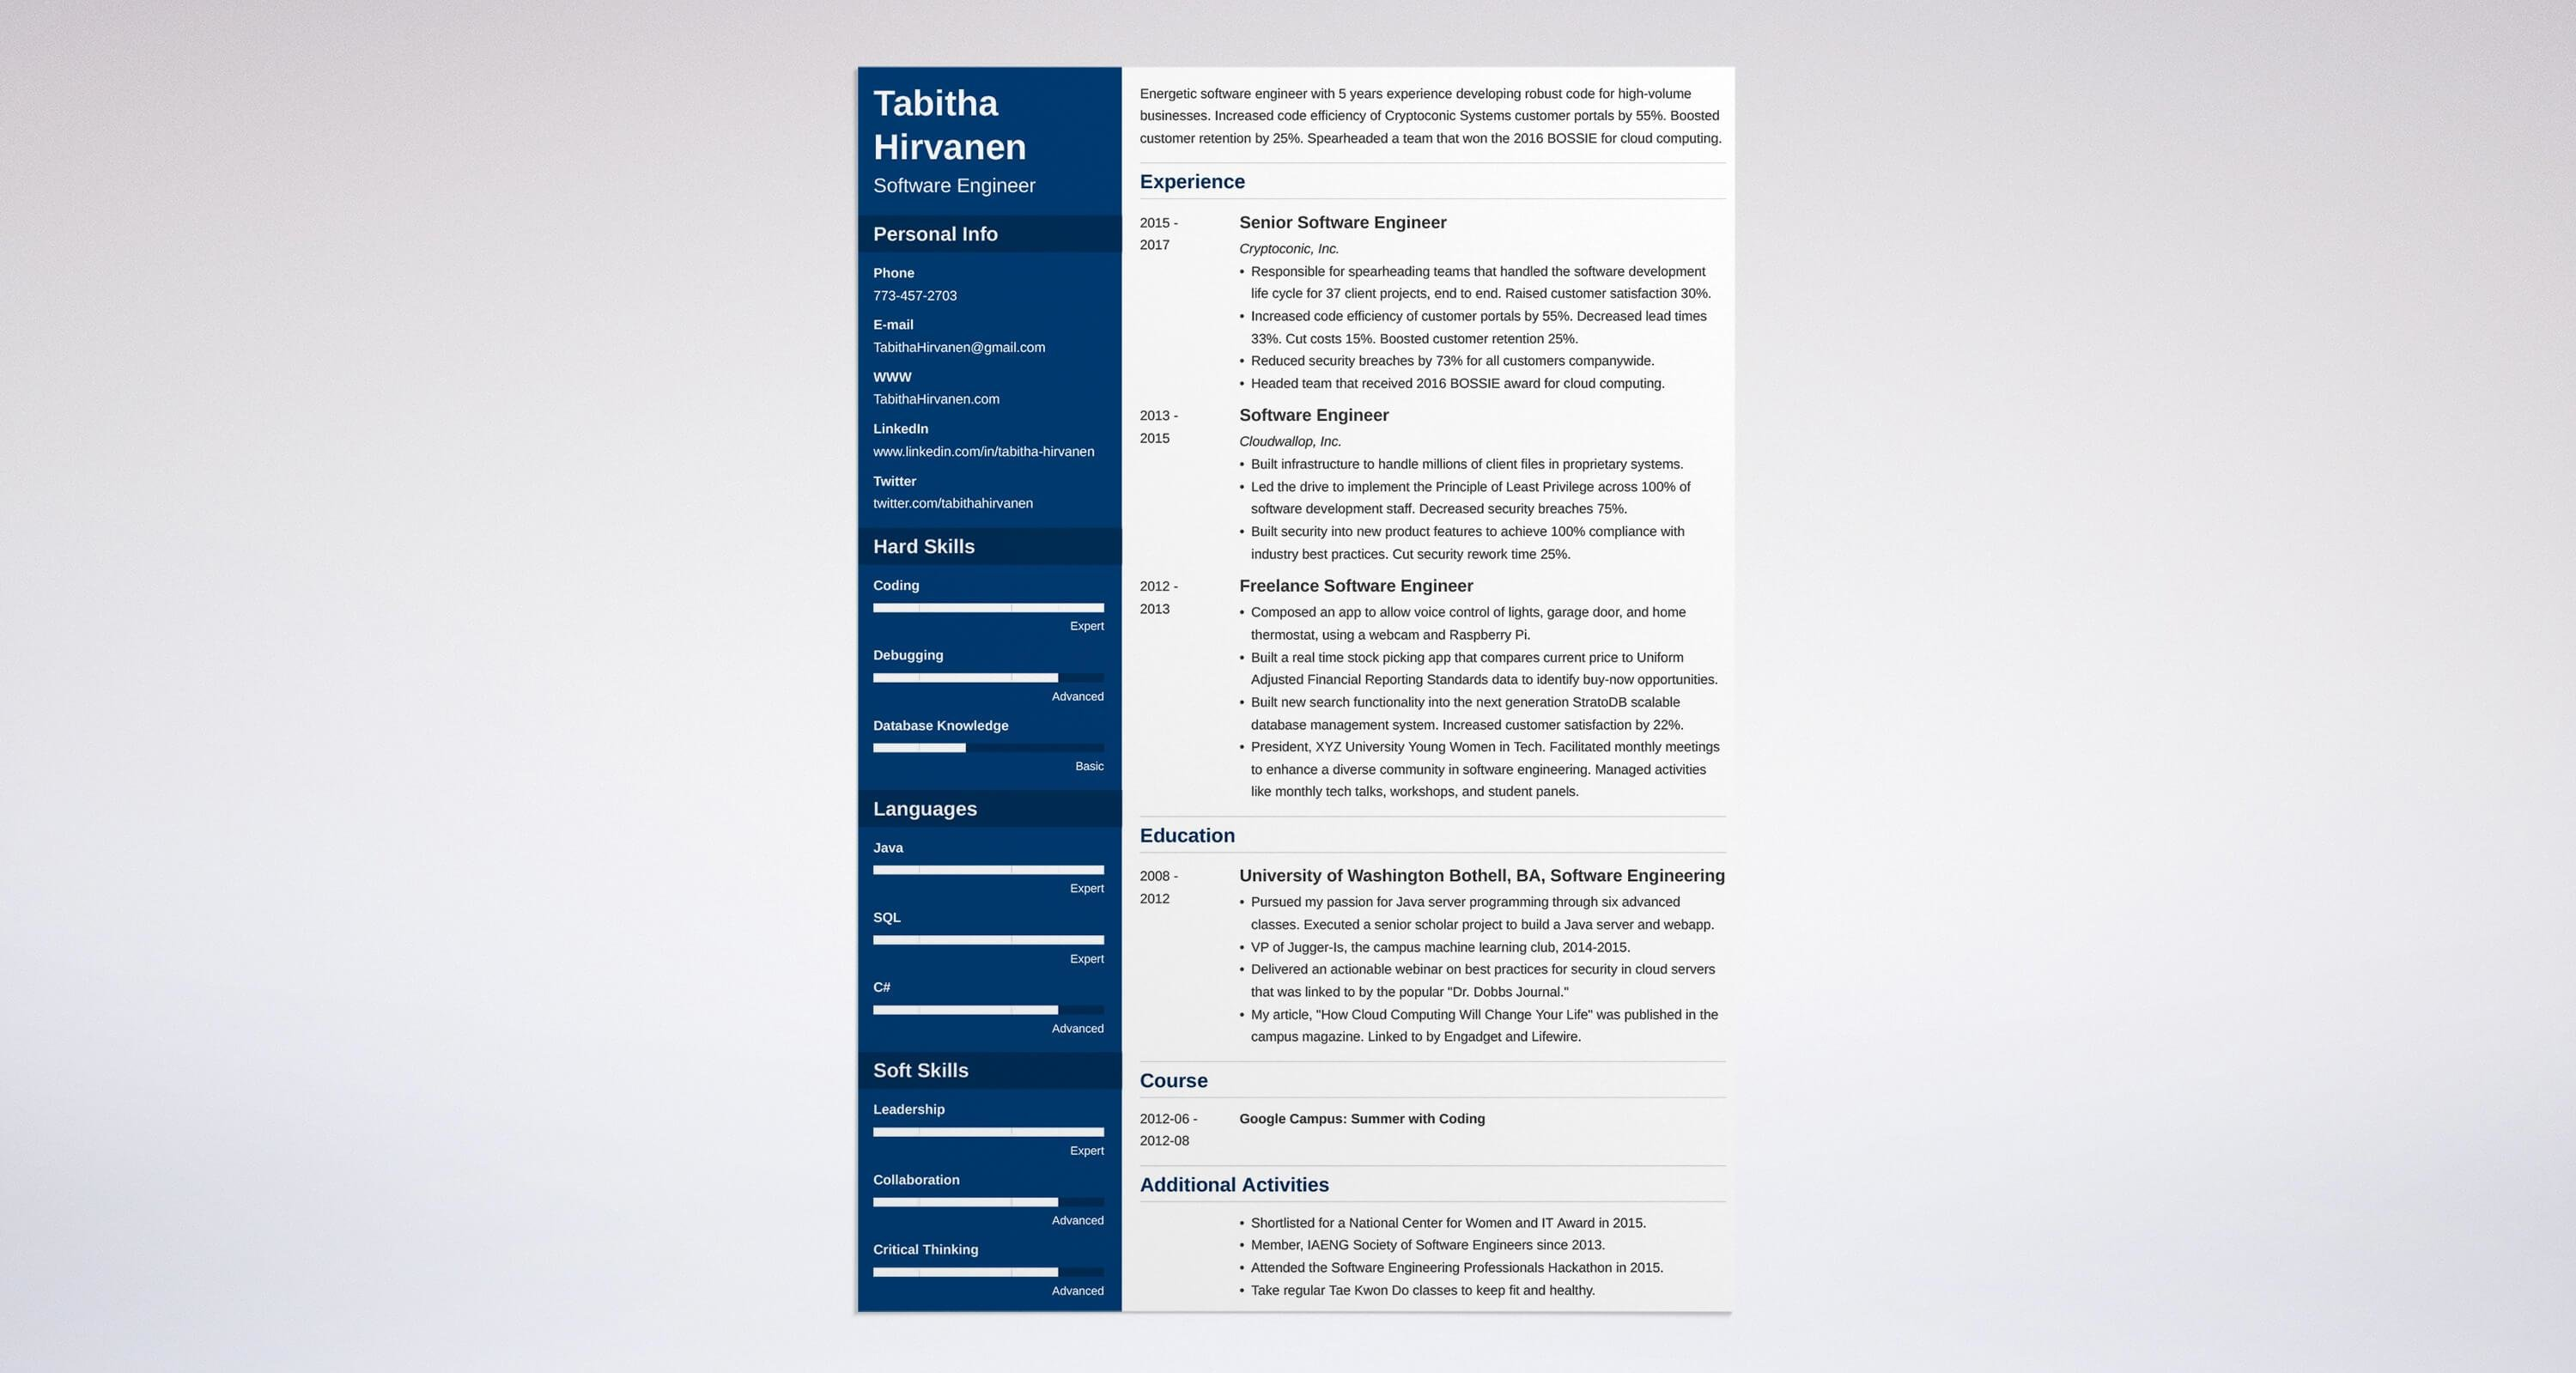 Software Engineer Resume Sample & Writing Guide [20+ Examples]